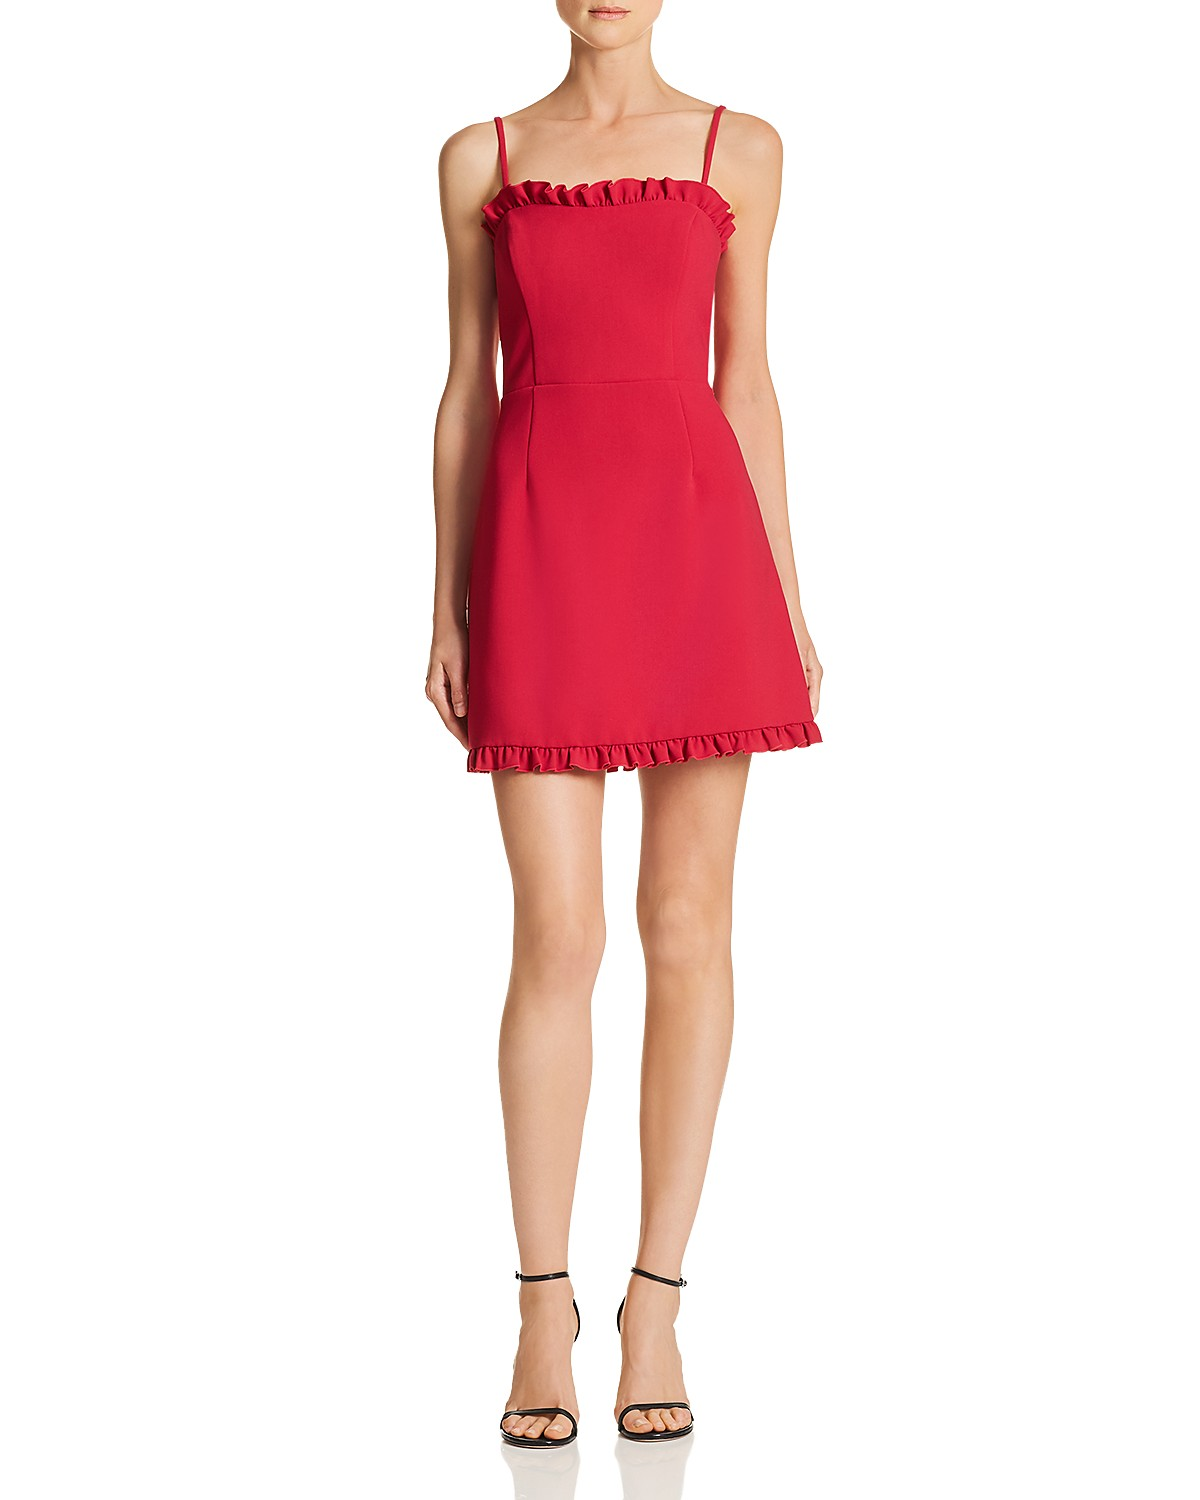 Simple & elegant- shop this red dress at  Bloomingdales .